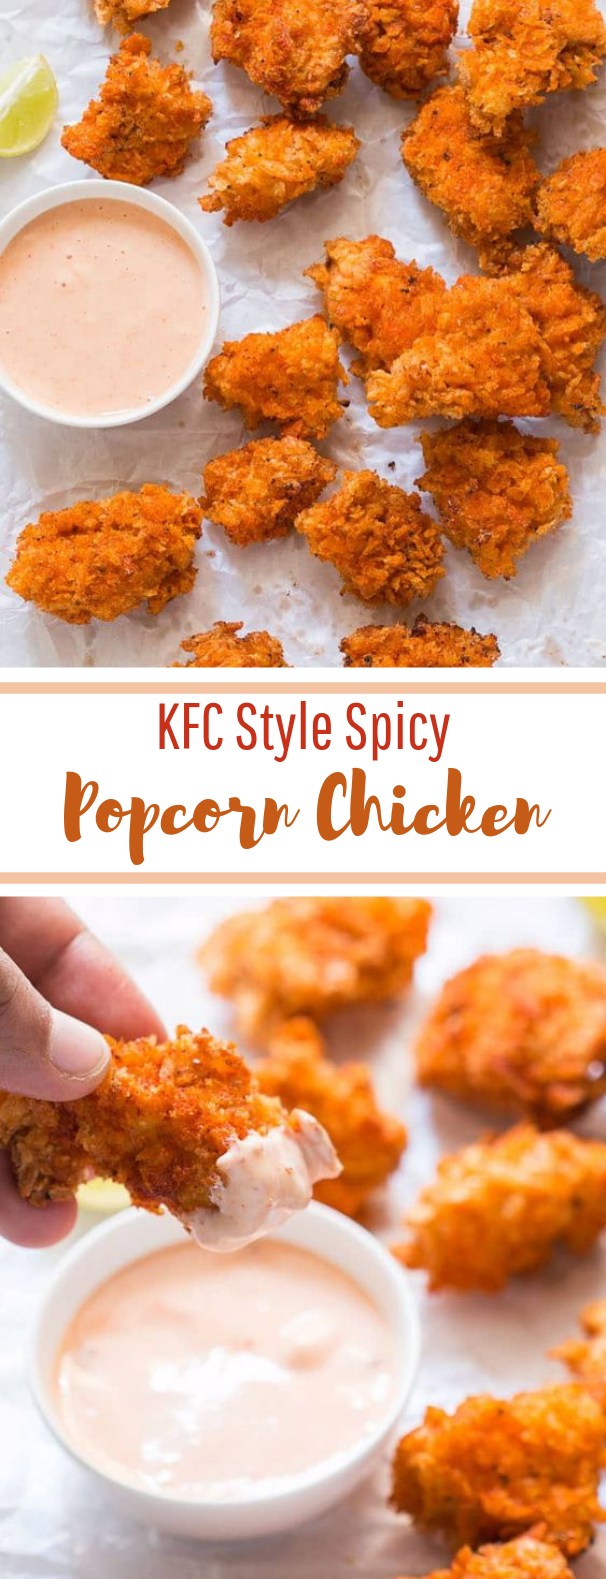 KFC Style Spicy Popcorn Chicken #appetizer #party